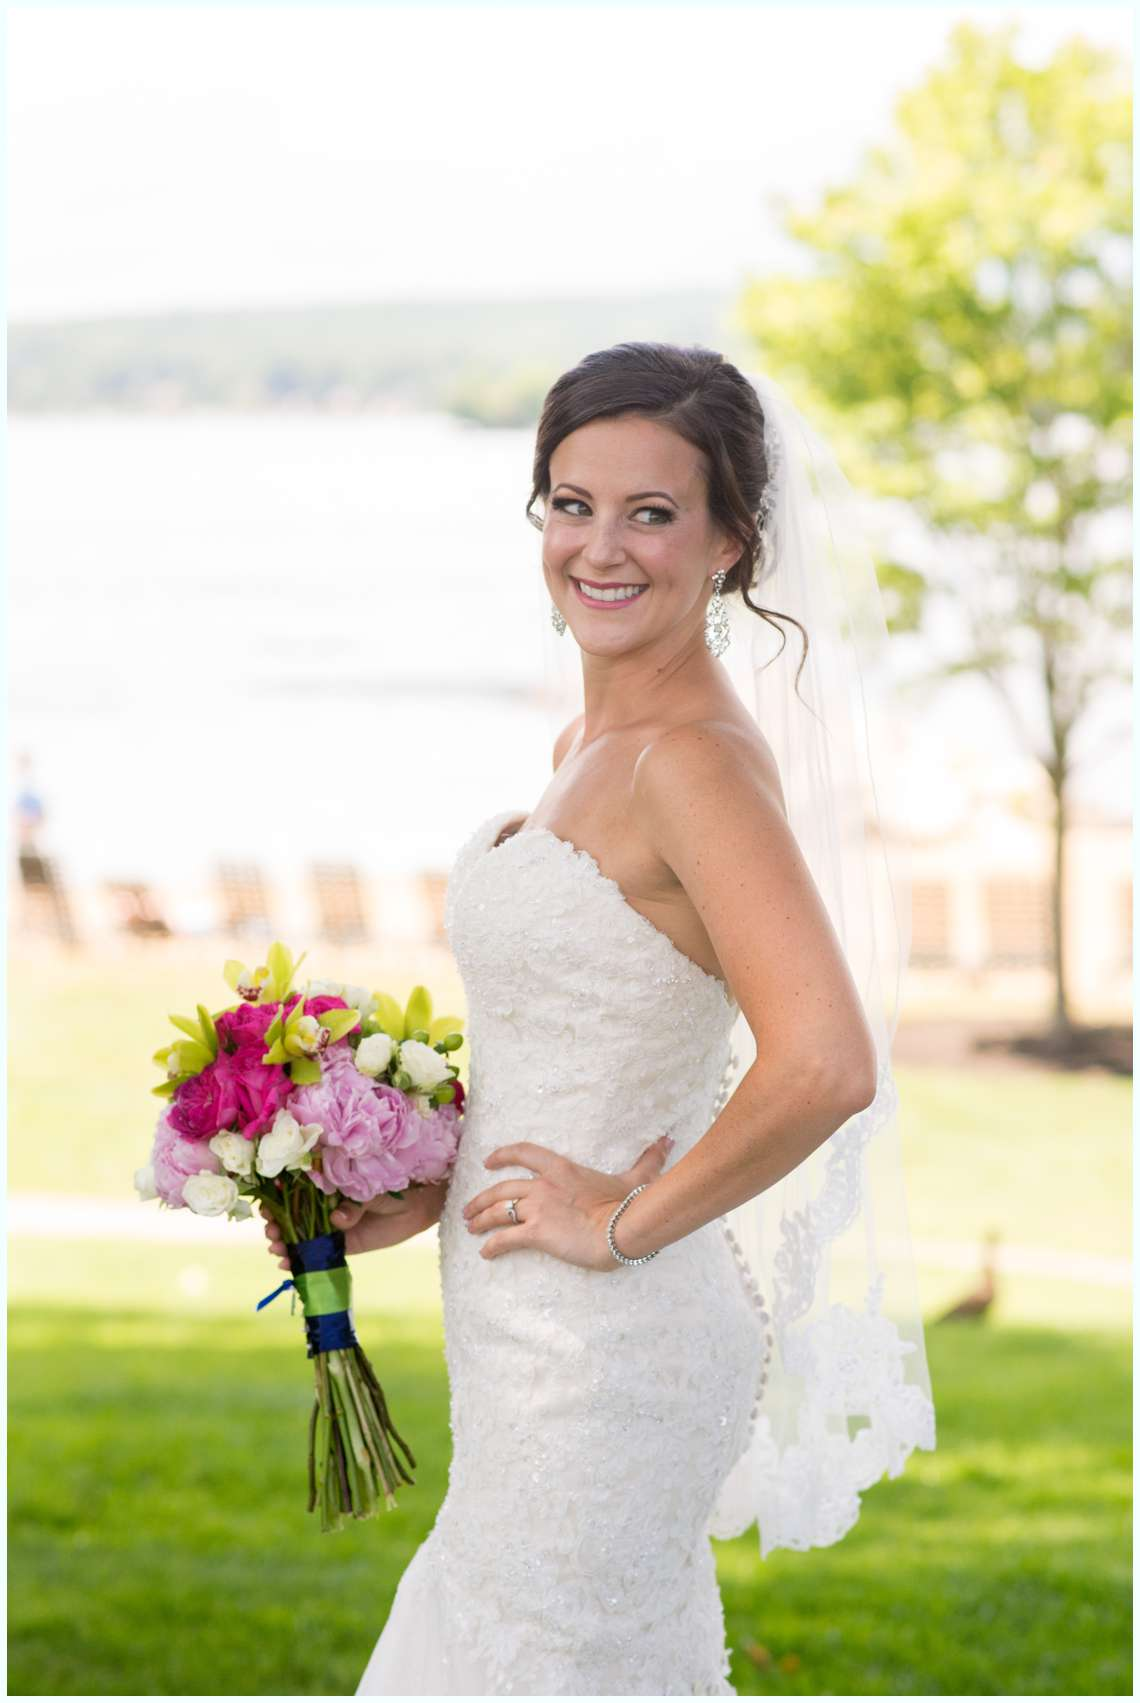 Bridal photos at the Margate Resort in New Hampshire